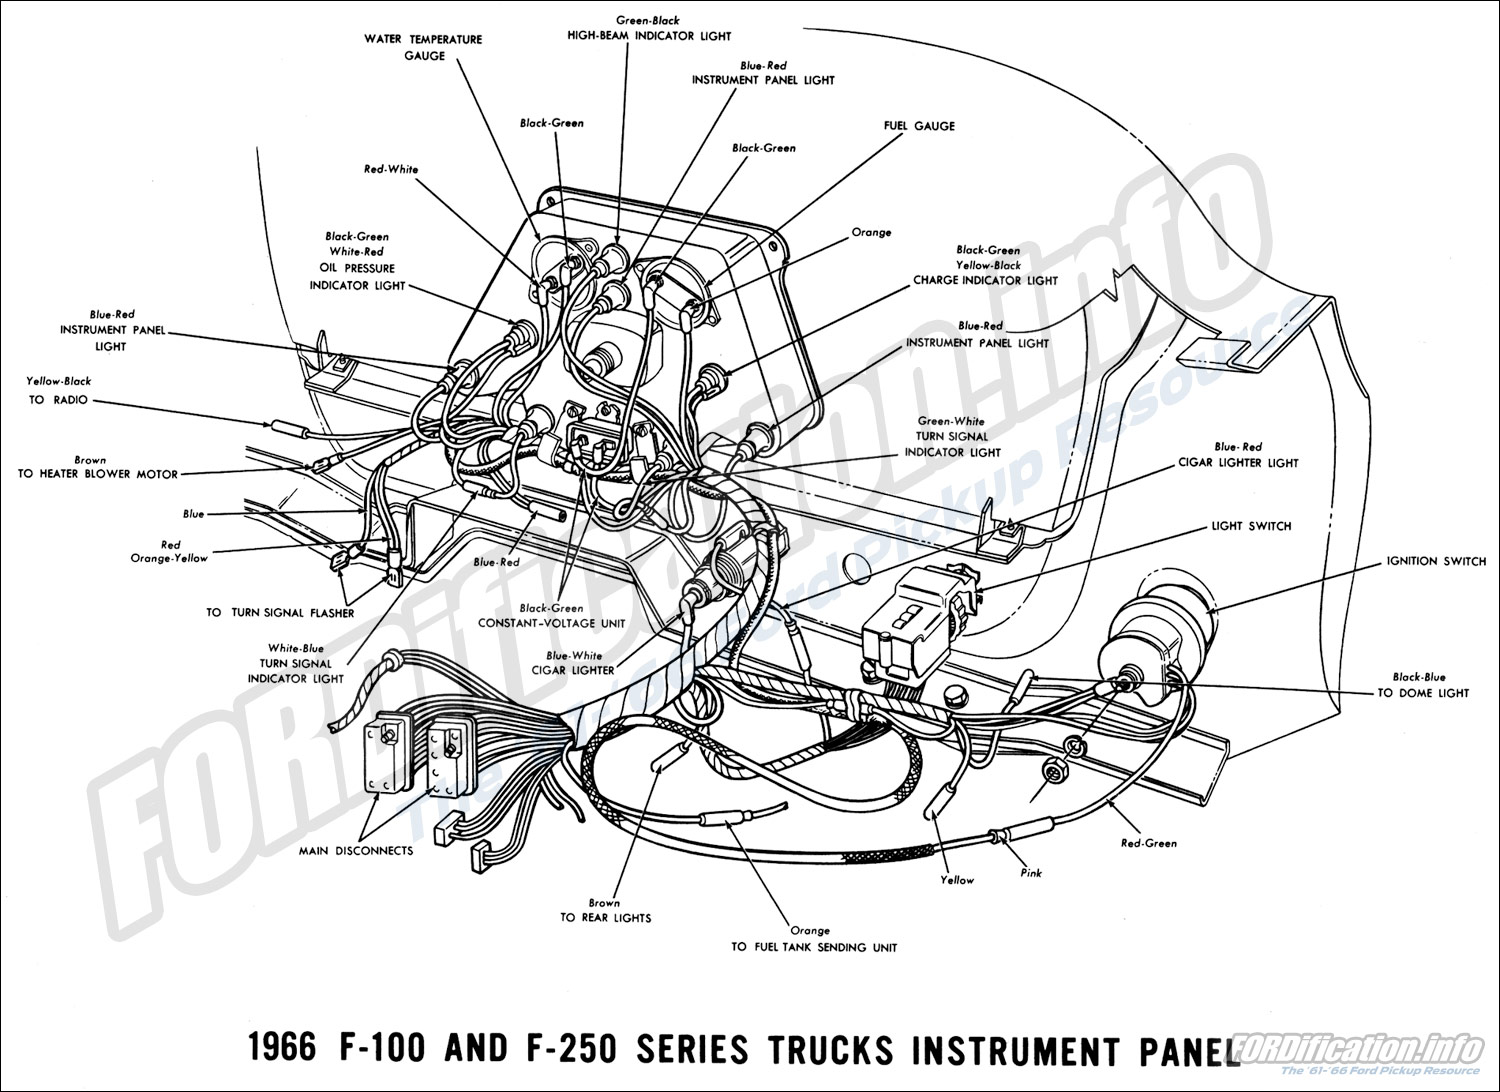 [DIAGRAM_34OR]  1966 Ford Truck Wiring Diagrams - FORDification.info - The '61-'66 Ford  Pickup Resource | 1966 Ford F250 Wiring Diagram |  | FORDification.info